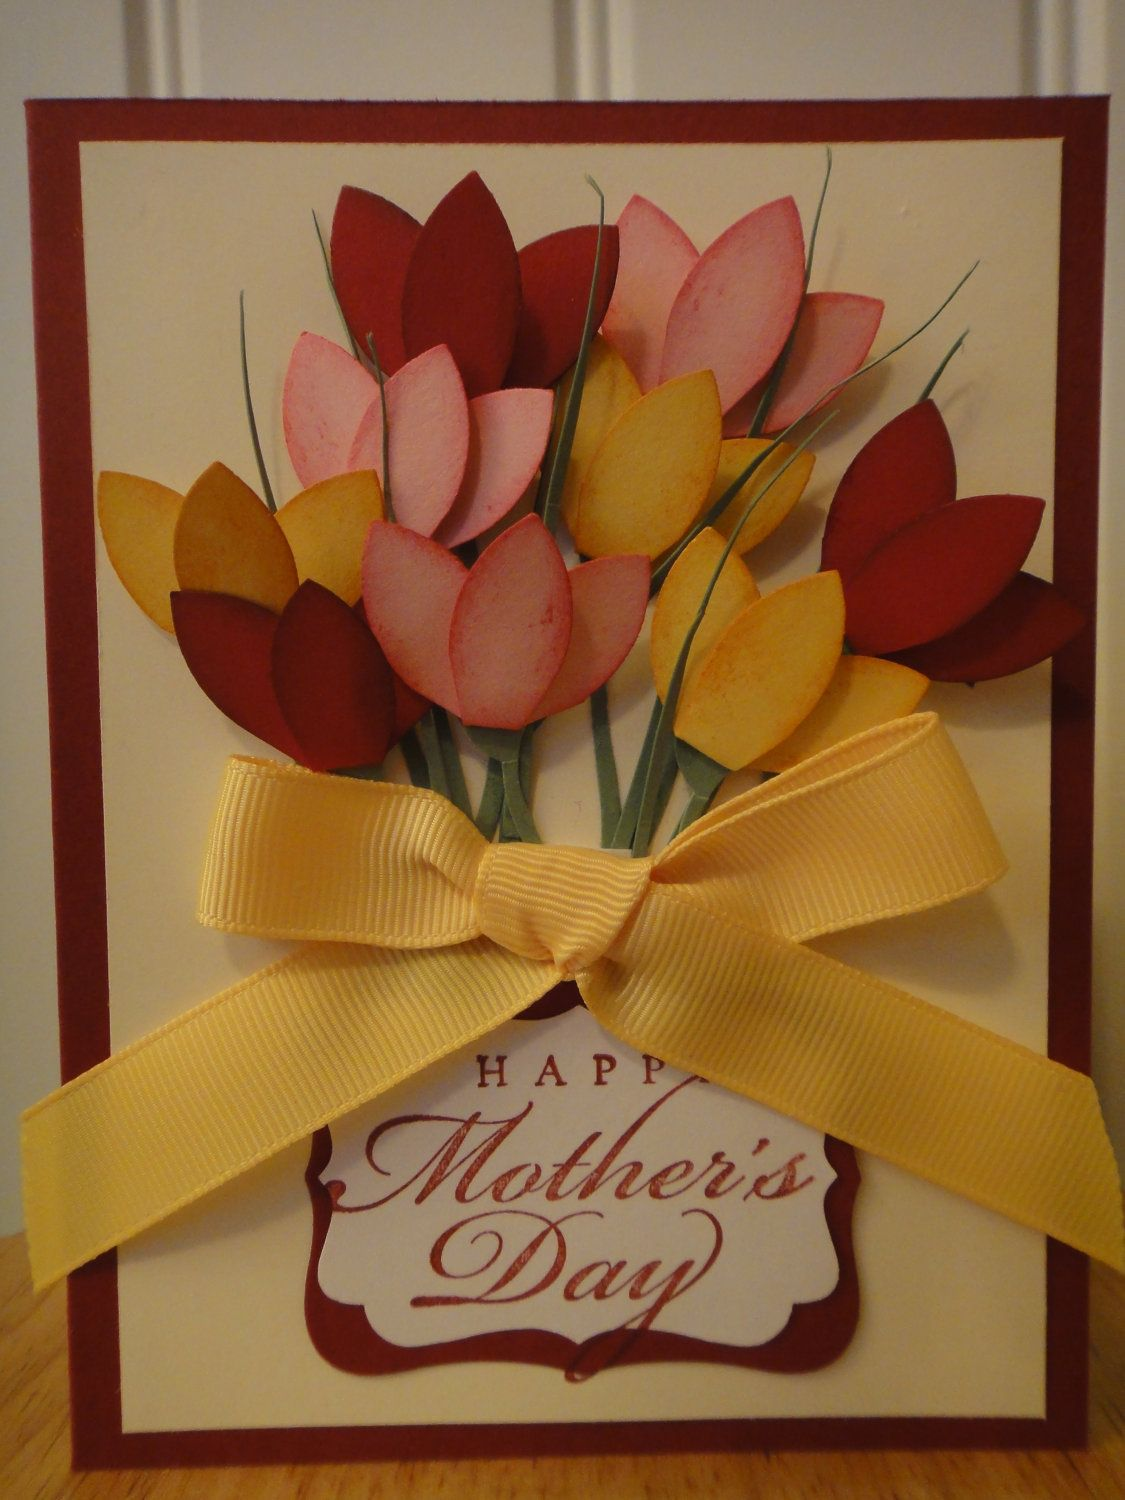 Image only cards special events grads seasons pinterest